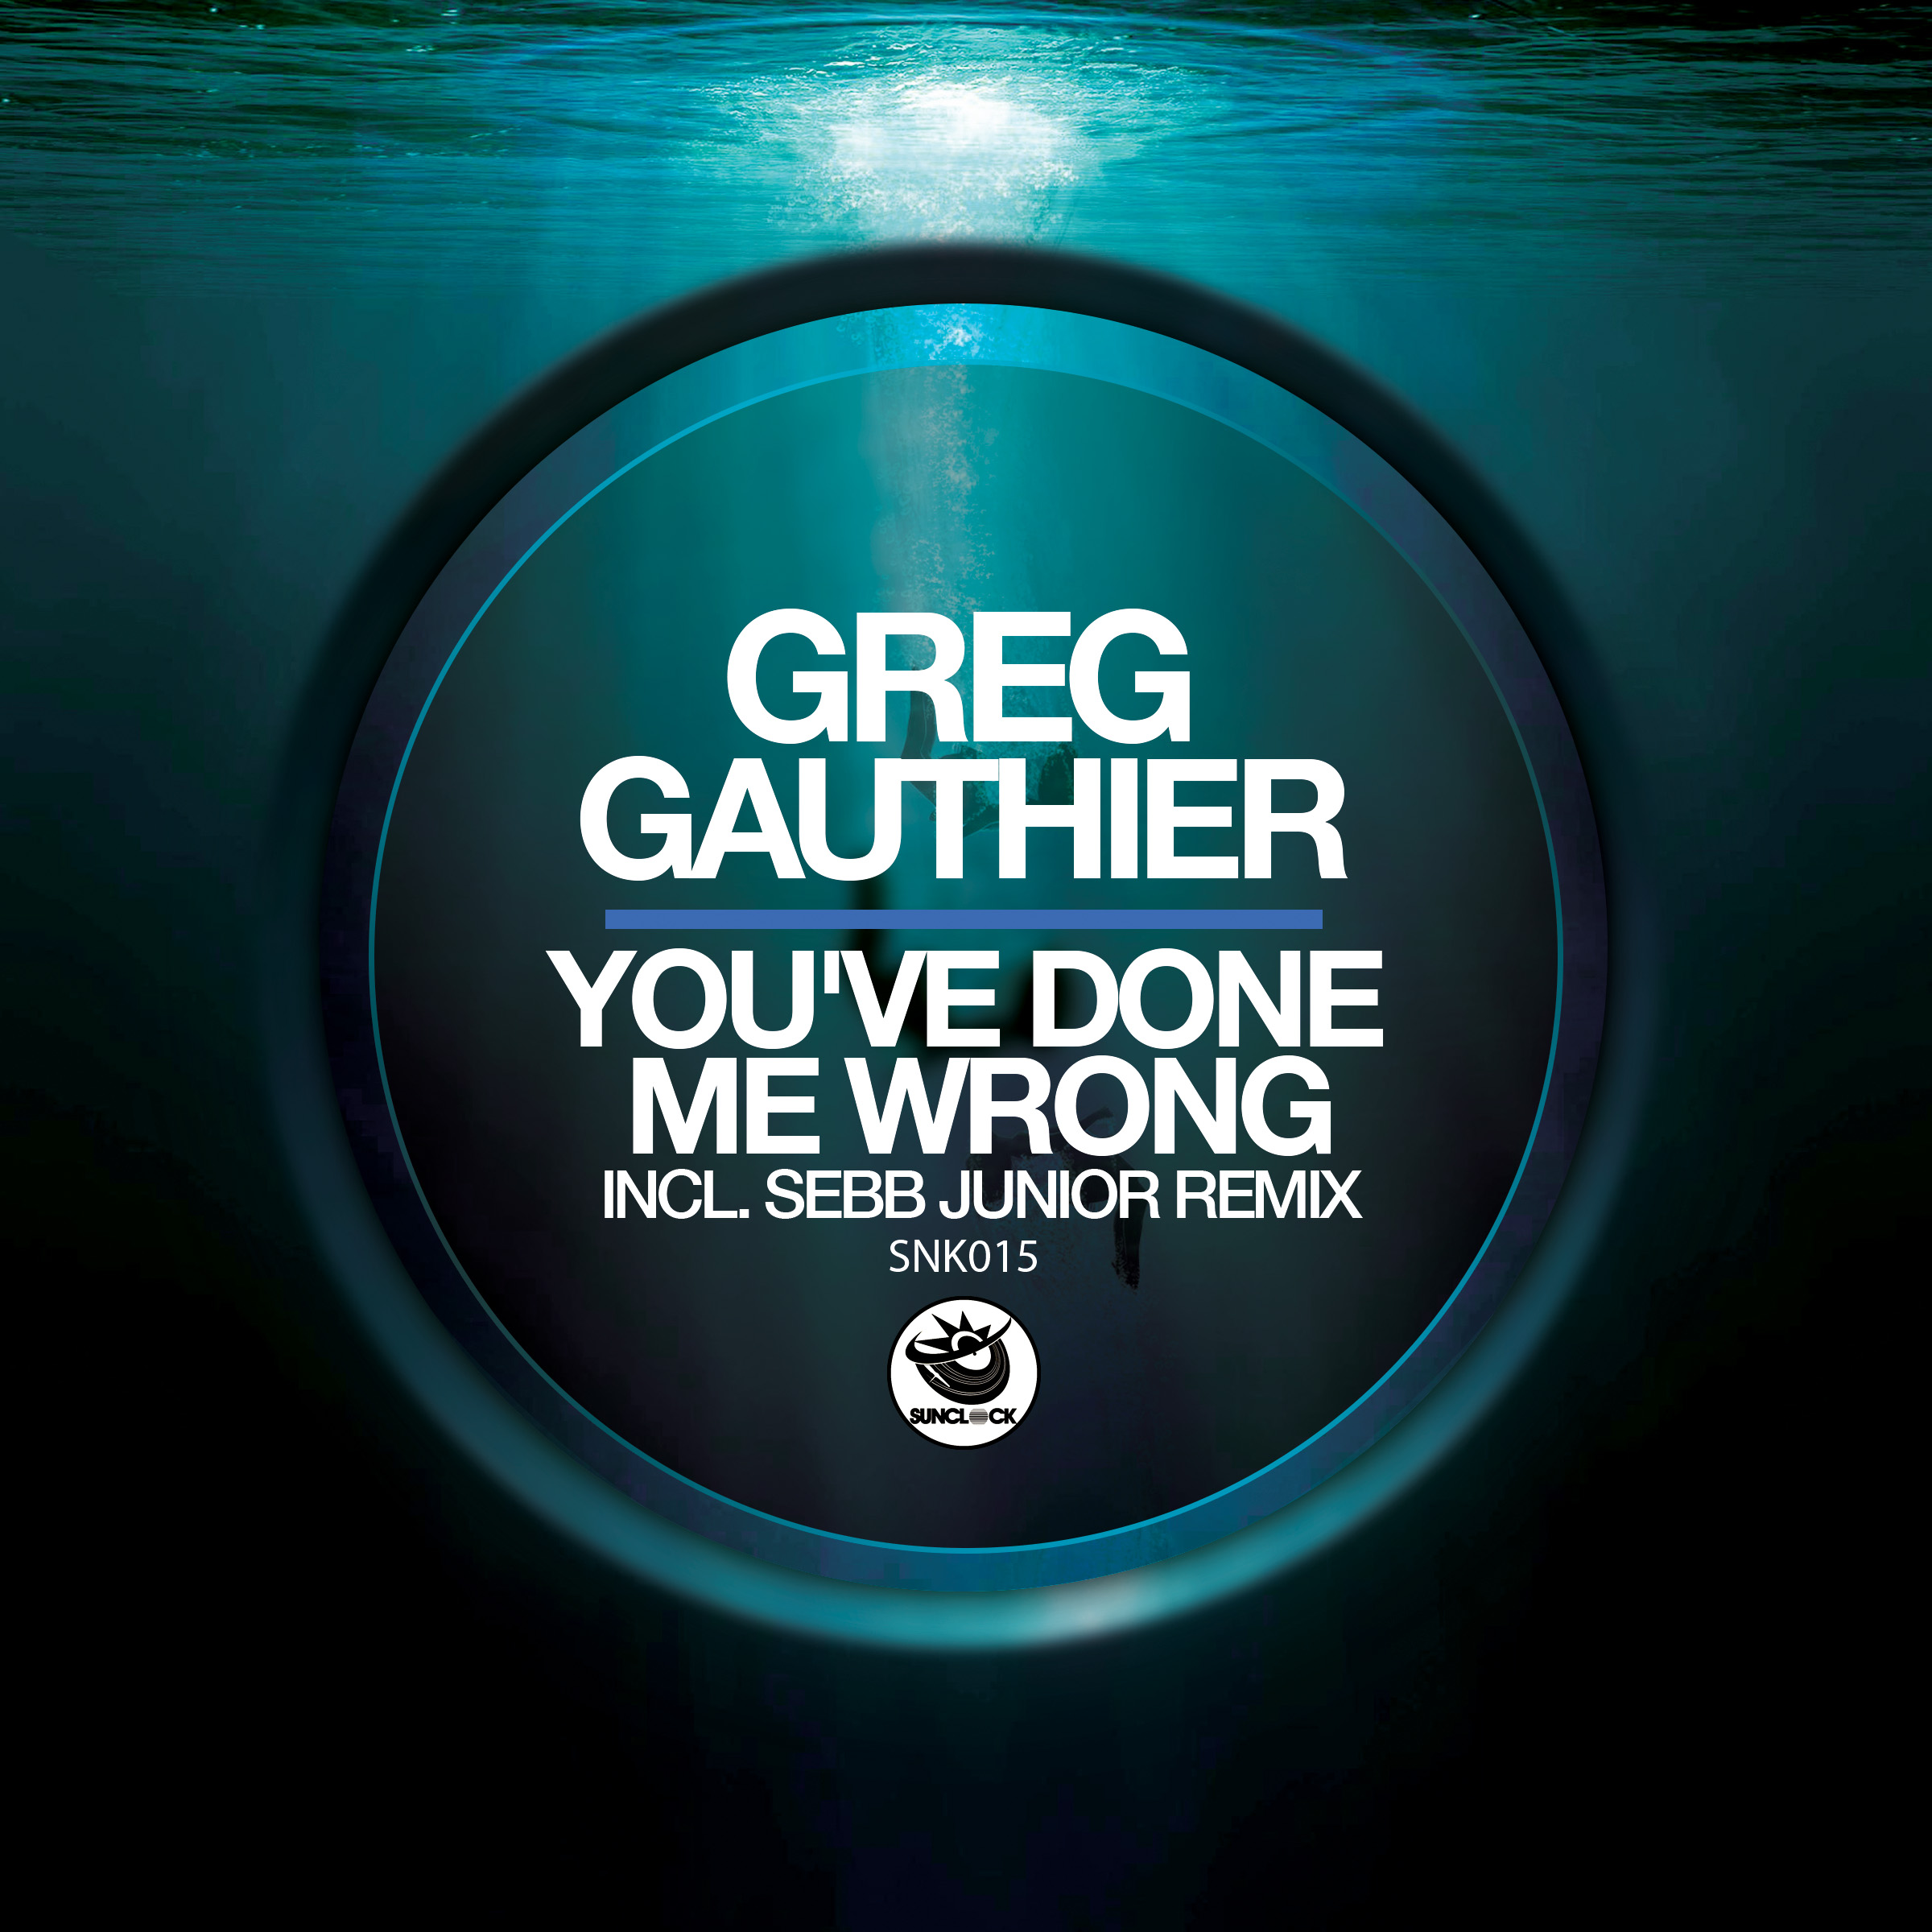 Greg Gauthier - You've Done Me Wrong (incl. Sebb Junior Remix) - SNK015 Cover